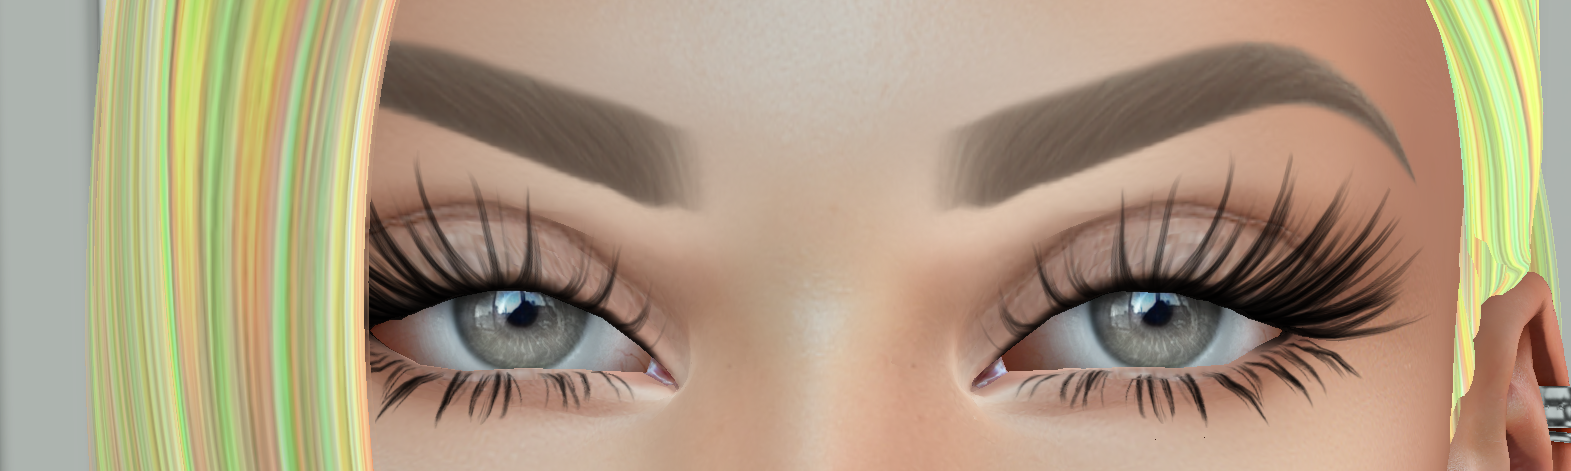 Eyebrow Appliers Arent Straight Catwa Avatar Secondlife Community